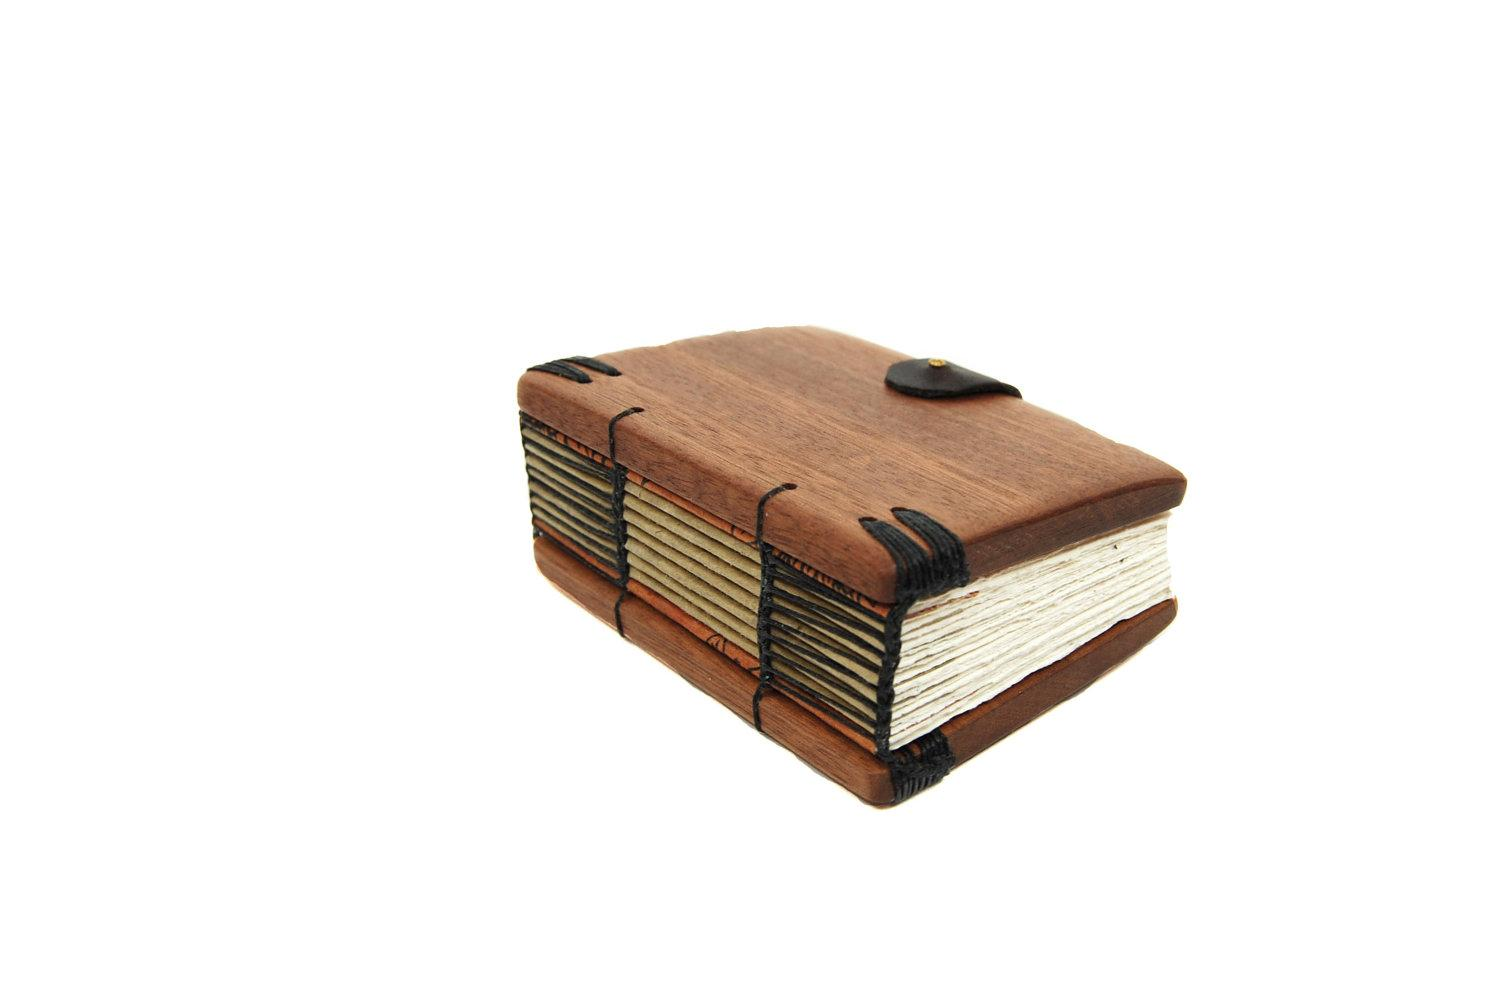 mini mahogany journal handmade blank wood by ThreeTreesBindery